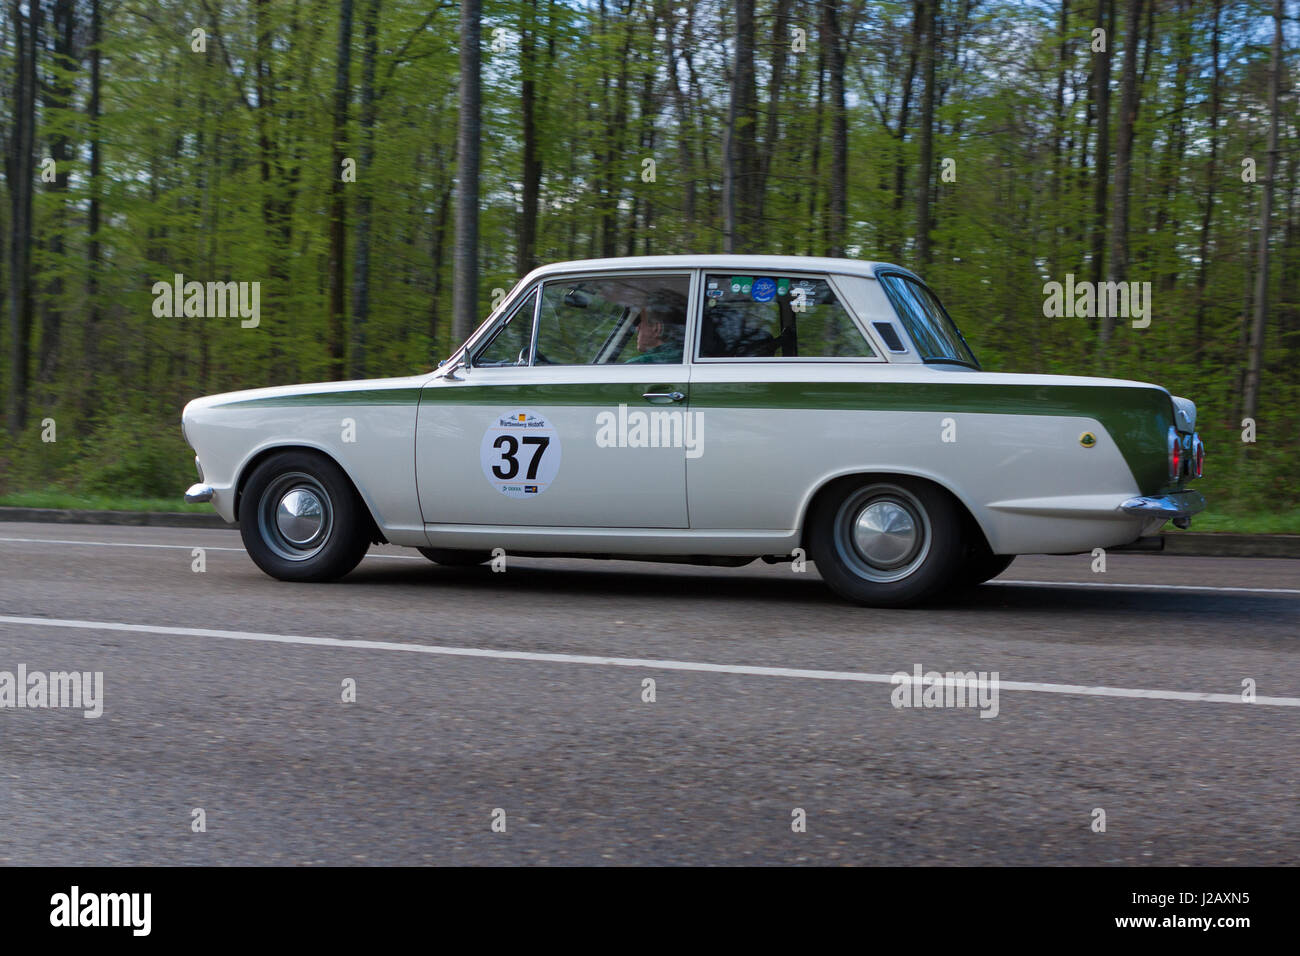 HEIDENHEIM, GERMANY - MAY 4, 2013: Manfred Krehle and Silvia Bogenrieder in their 1965 Ford Lotus Cortina at the Stock Photo